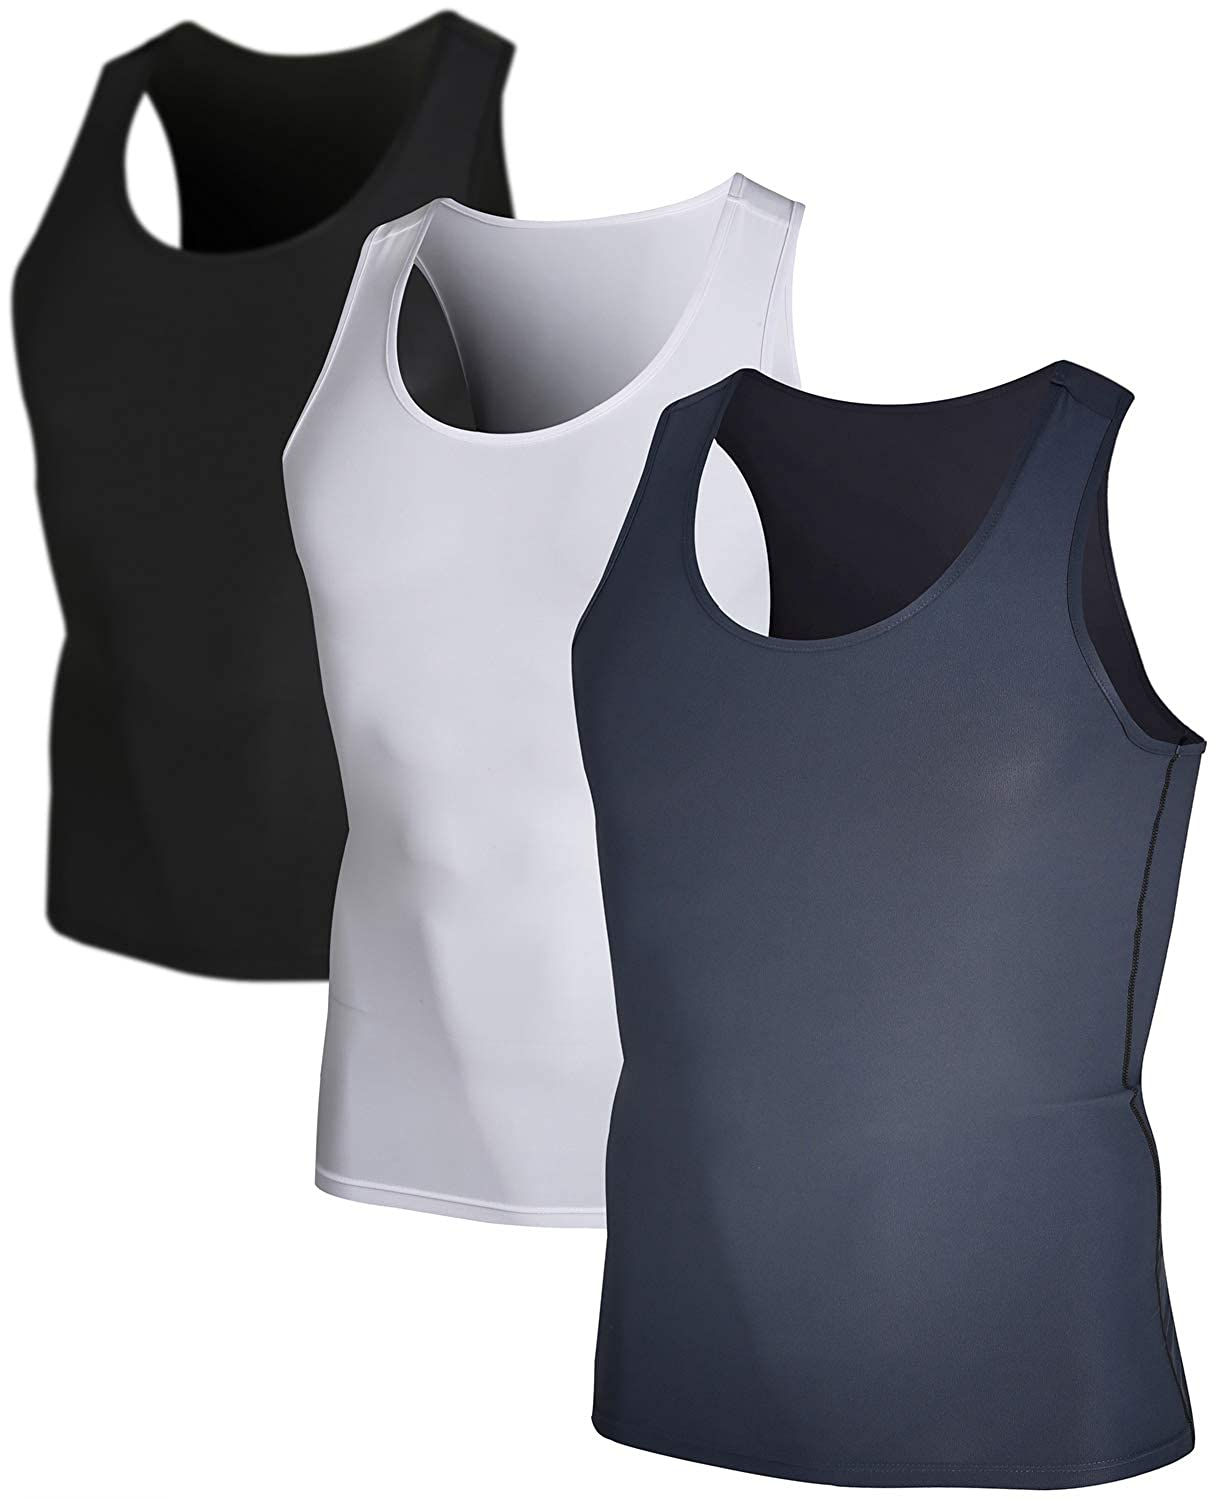 DEVOPS Men's 3 Pack Sleeveless Athletic Cool Dry Compression Muscle Tank Top